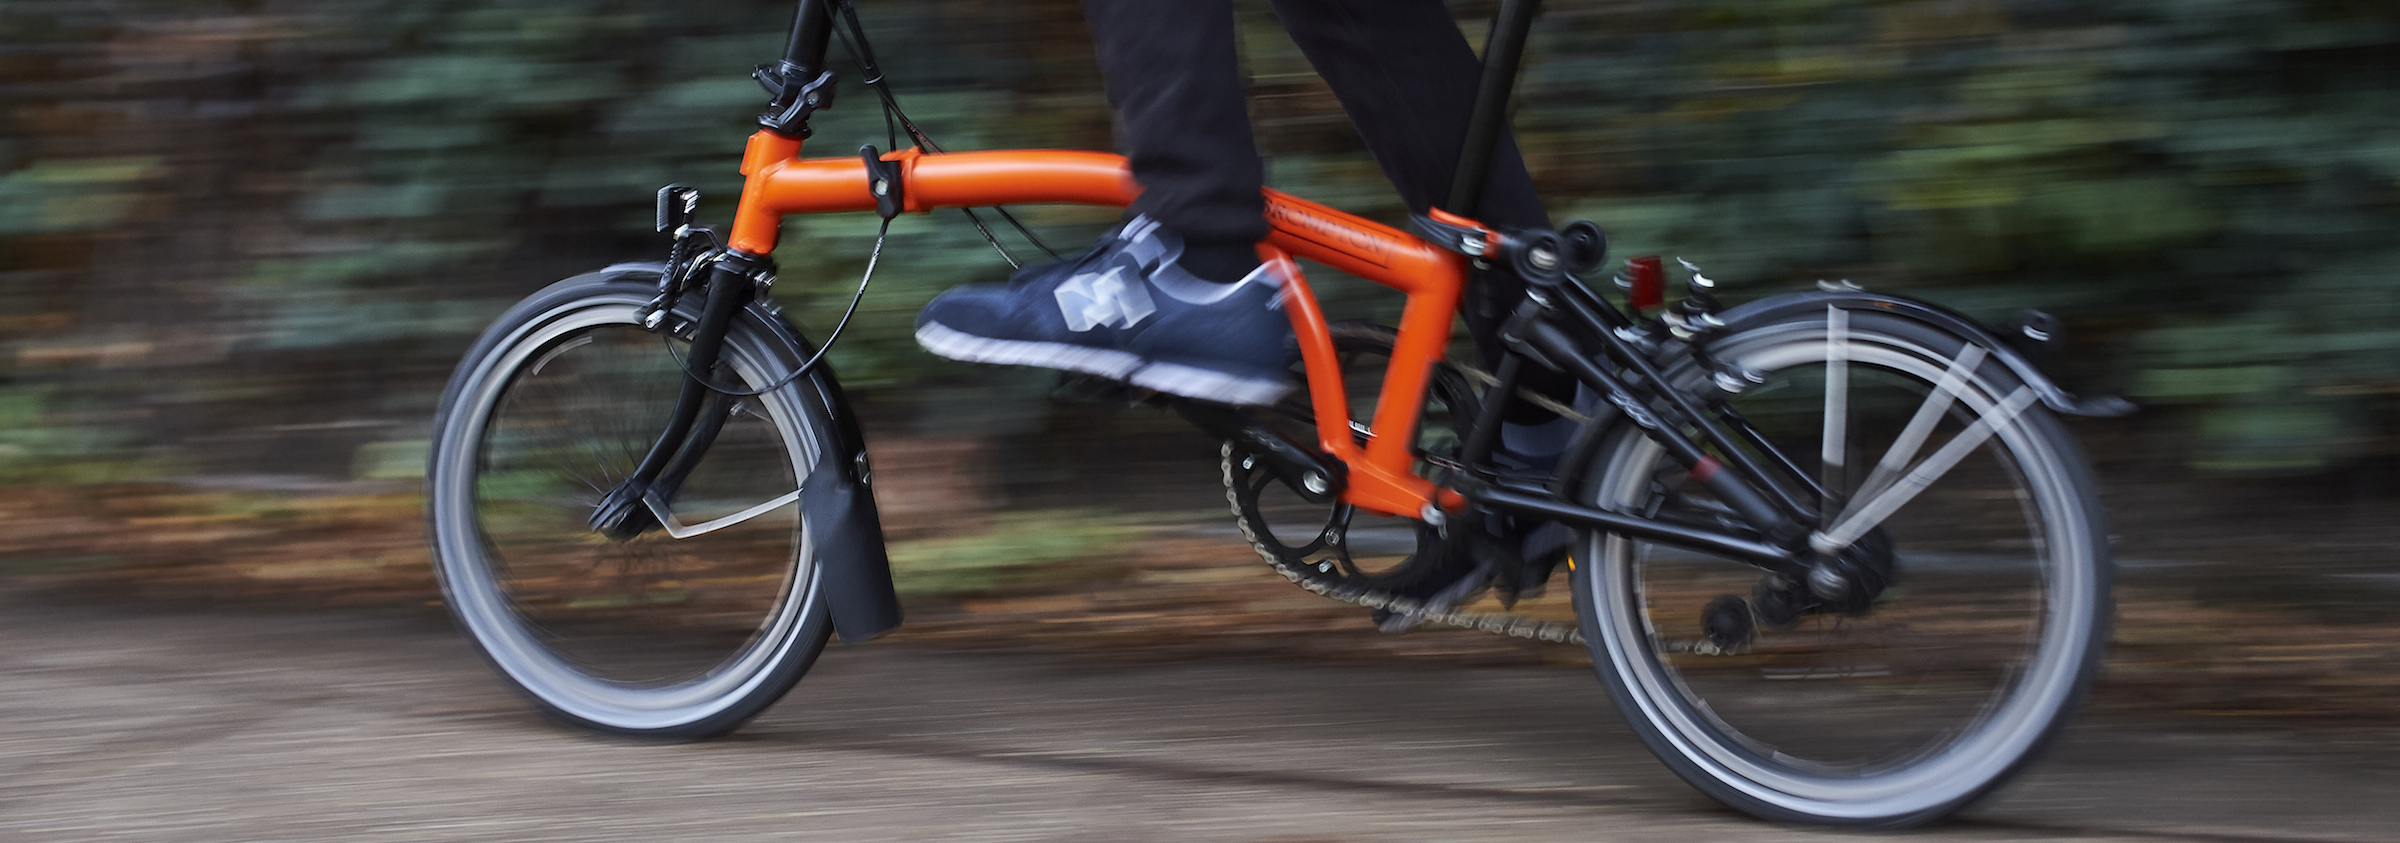 Riding the new Black Edition Brompton with Orange Mainframe